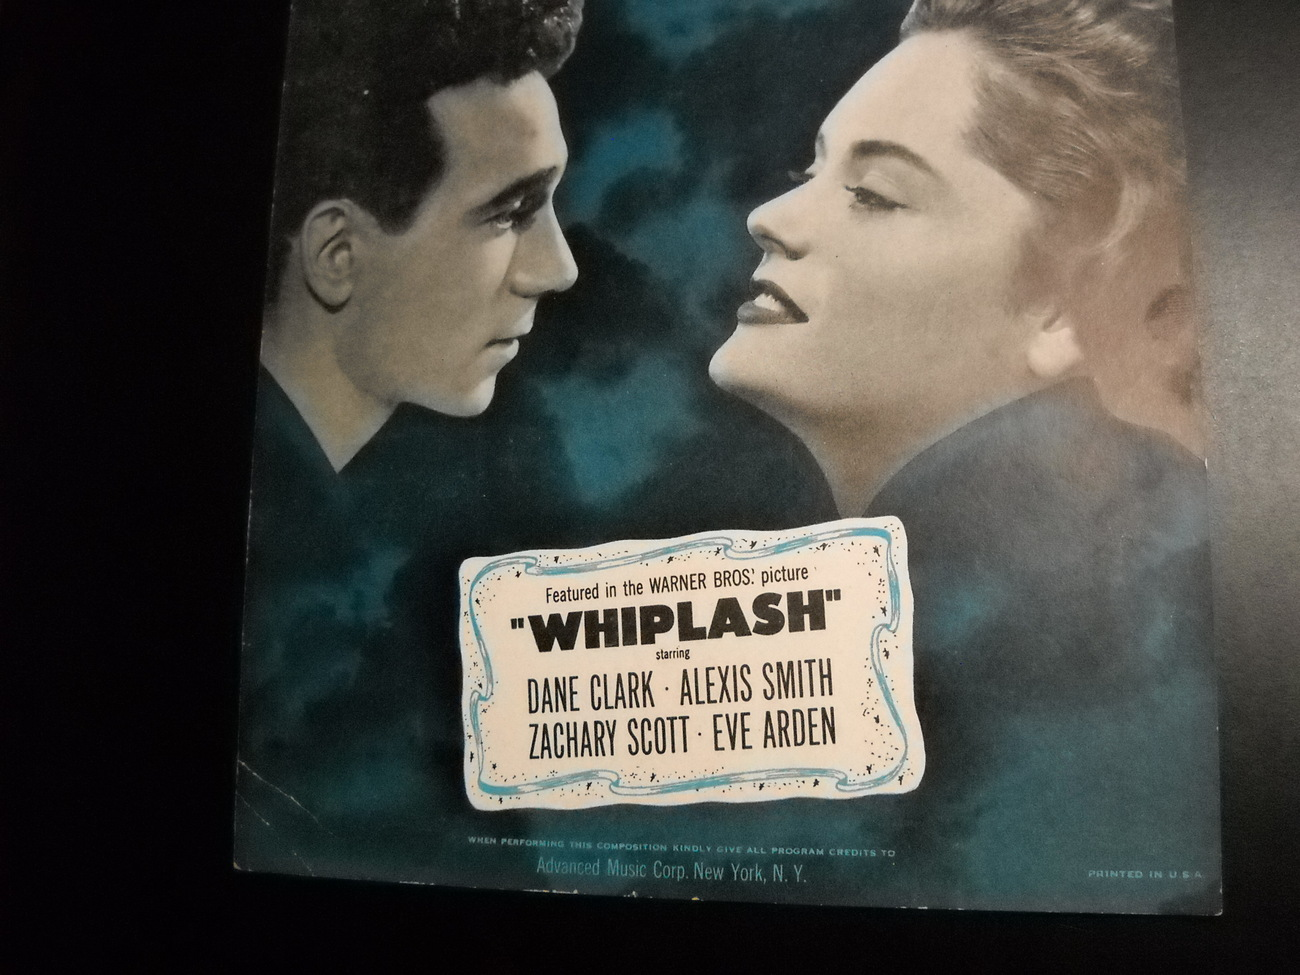 Sheet_music_just_for_now_whiplash_dana_clark_1948_advanced_music_04